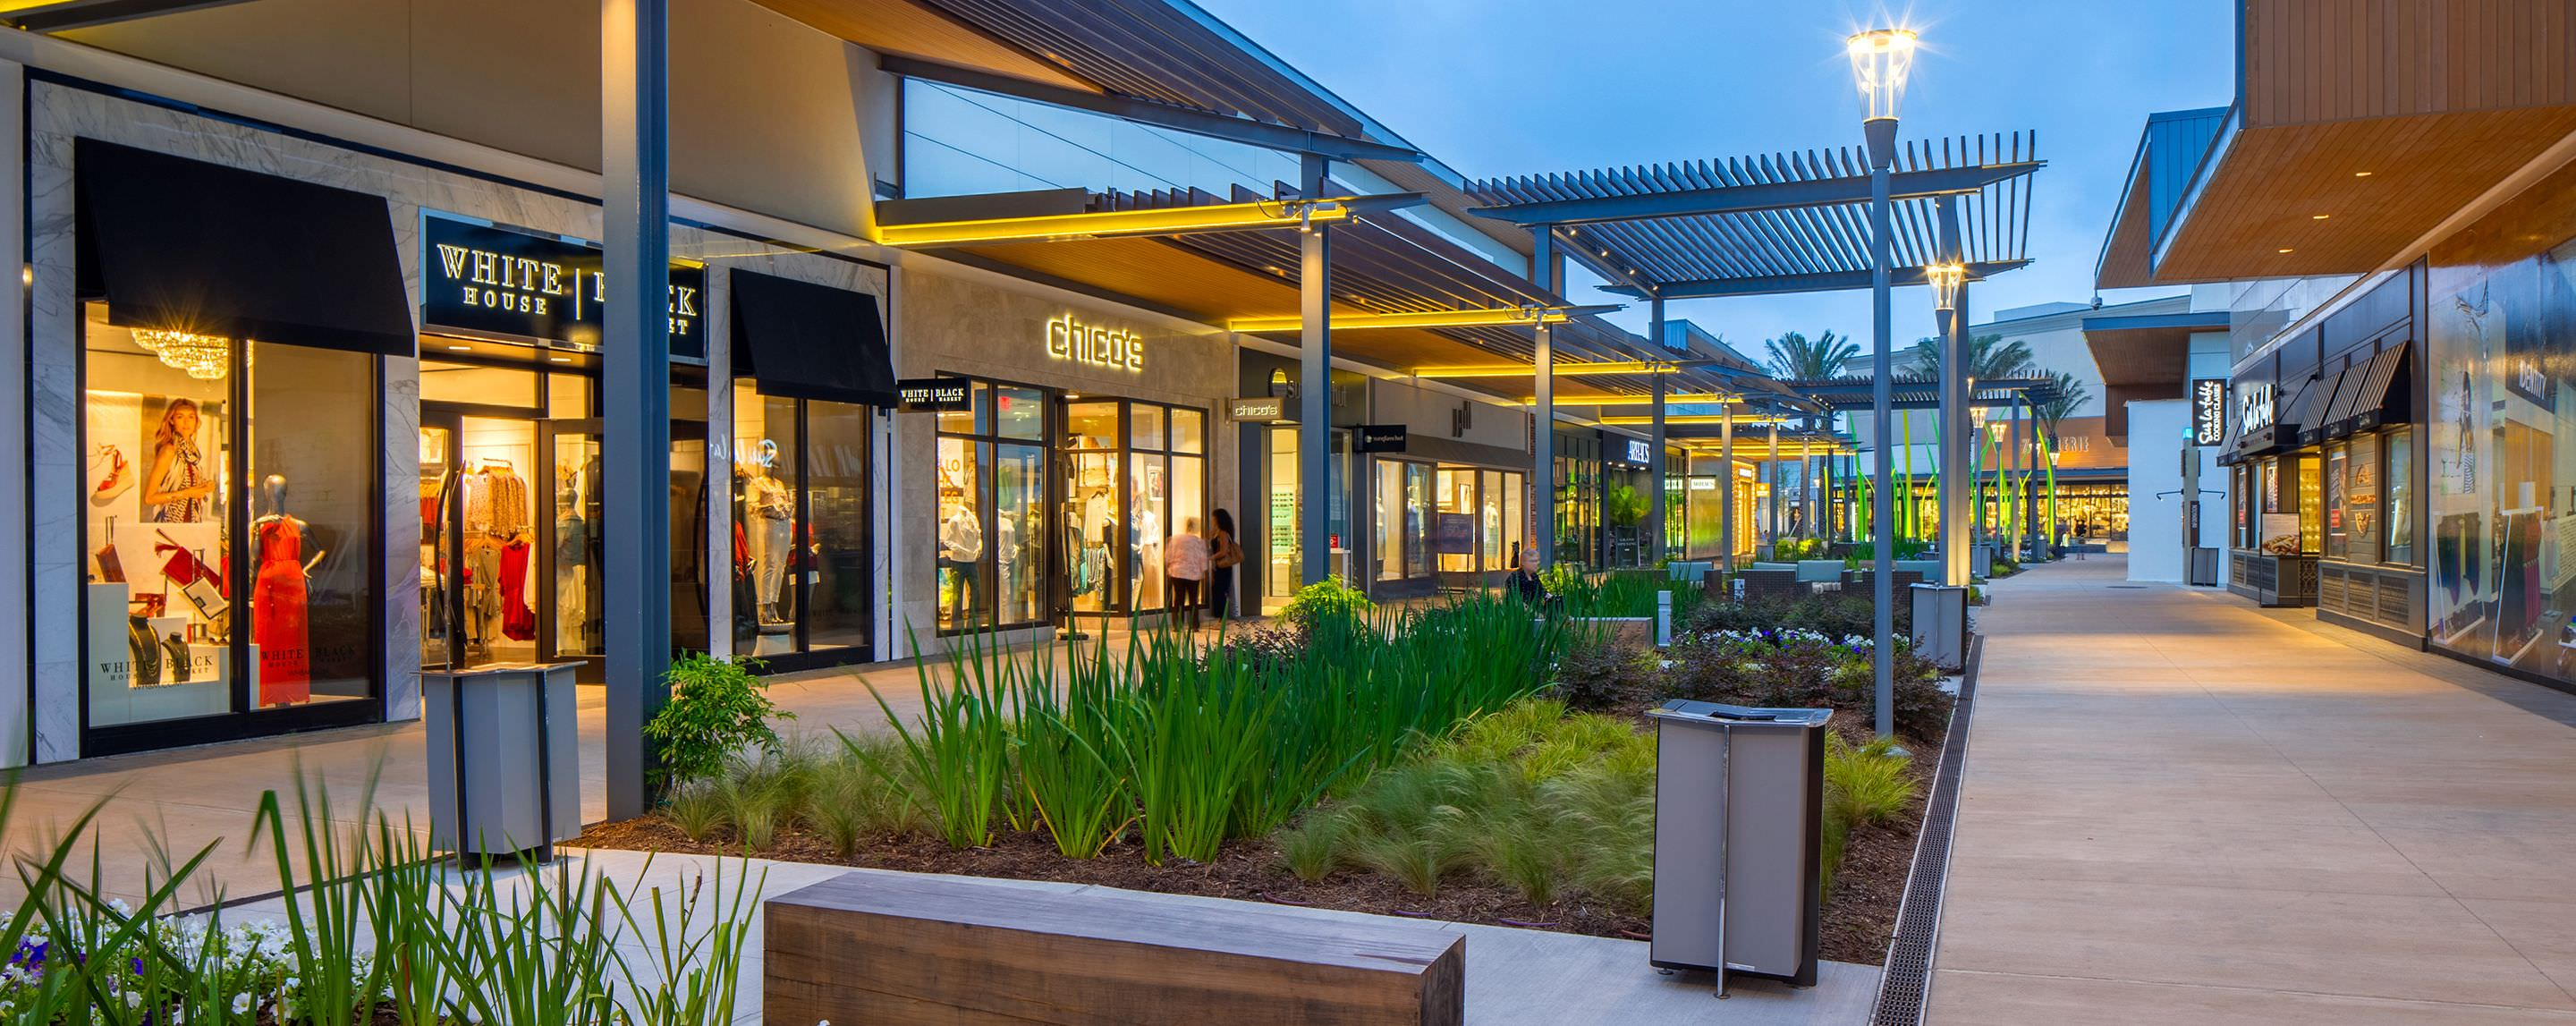 At night at a GGP property, an outdoor walkway is filled with store fronts welcoming shoppers.